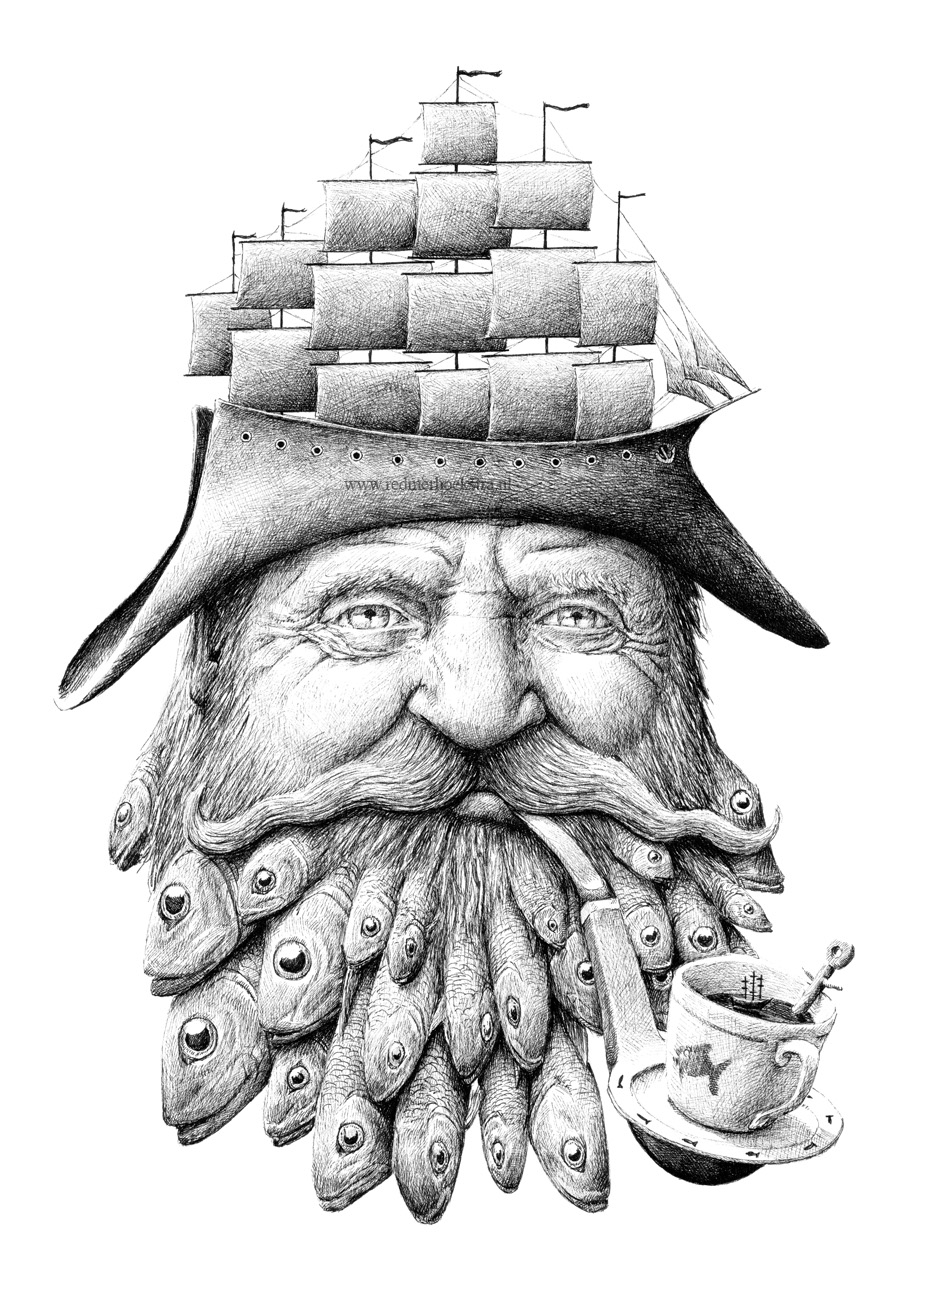 20-Sailor-Redmer-Hoekstra-Drawing-Fantastic-and-Surreal-World-of-Hoekstra-www-designstack-co